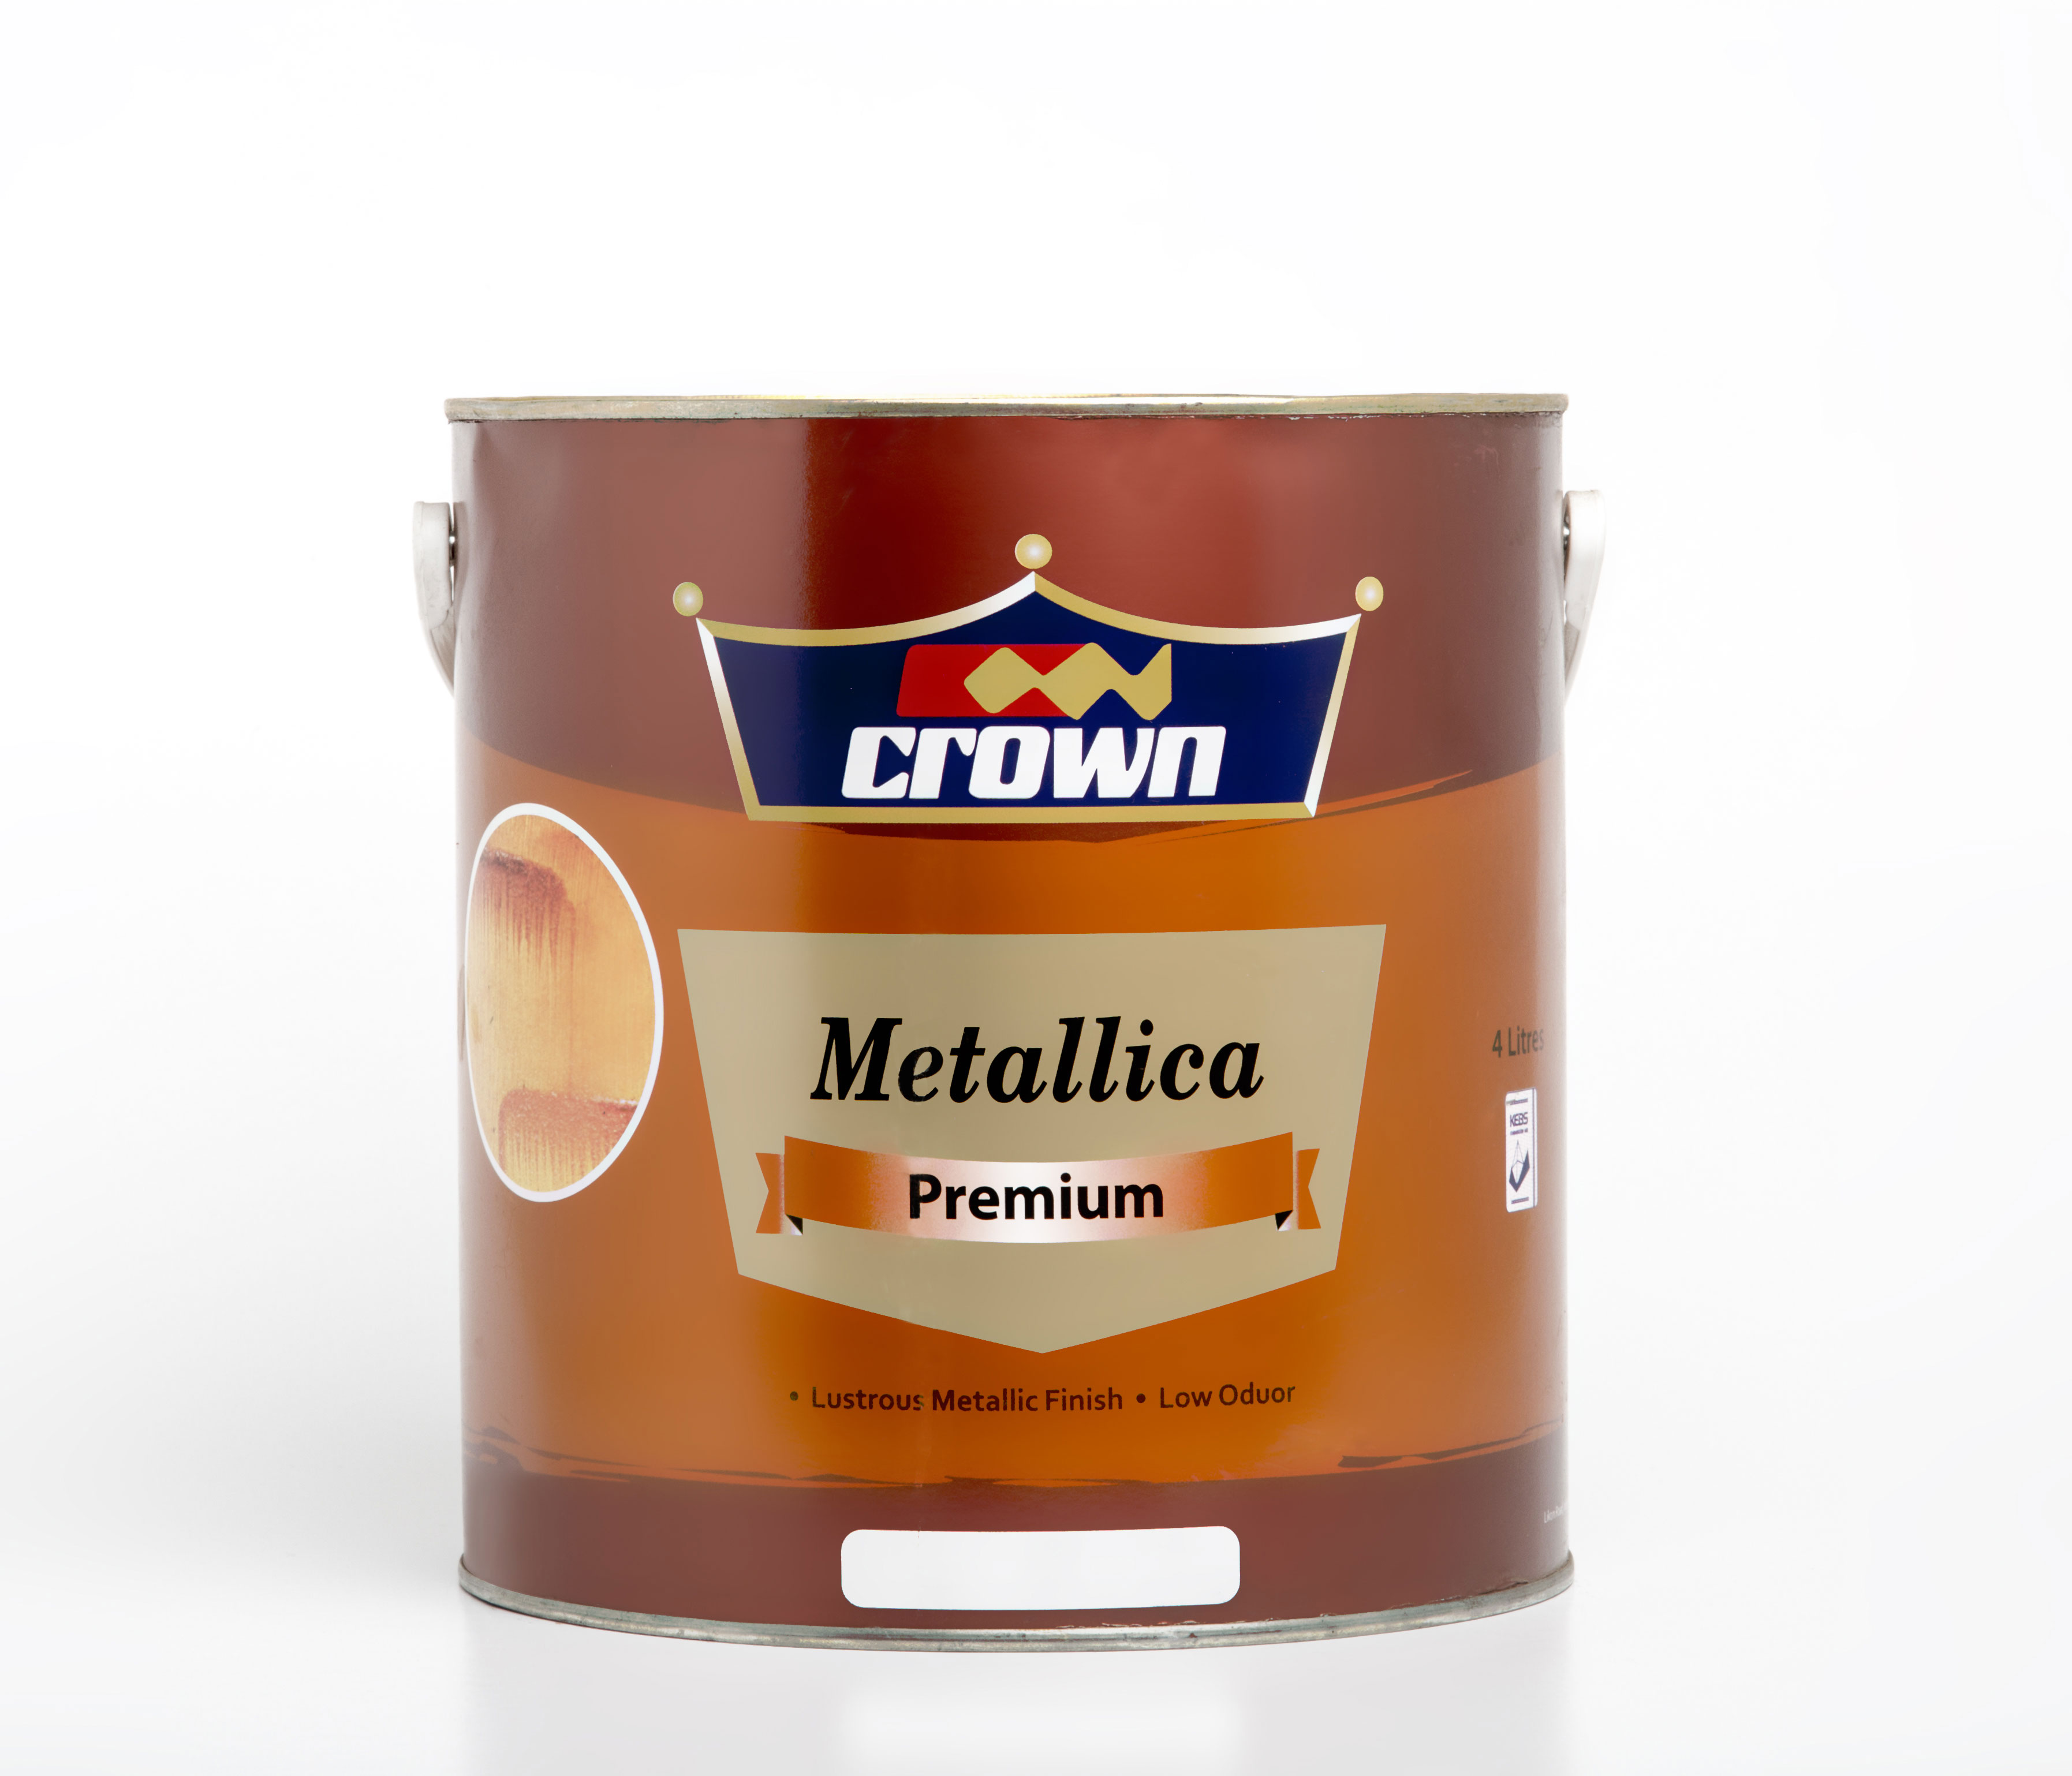 Crown metallica special effect paint crown paints kenya plc metallic finish paint adhesives automotive industrial intermediate road marking thinners nvjuhfo Images